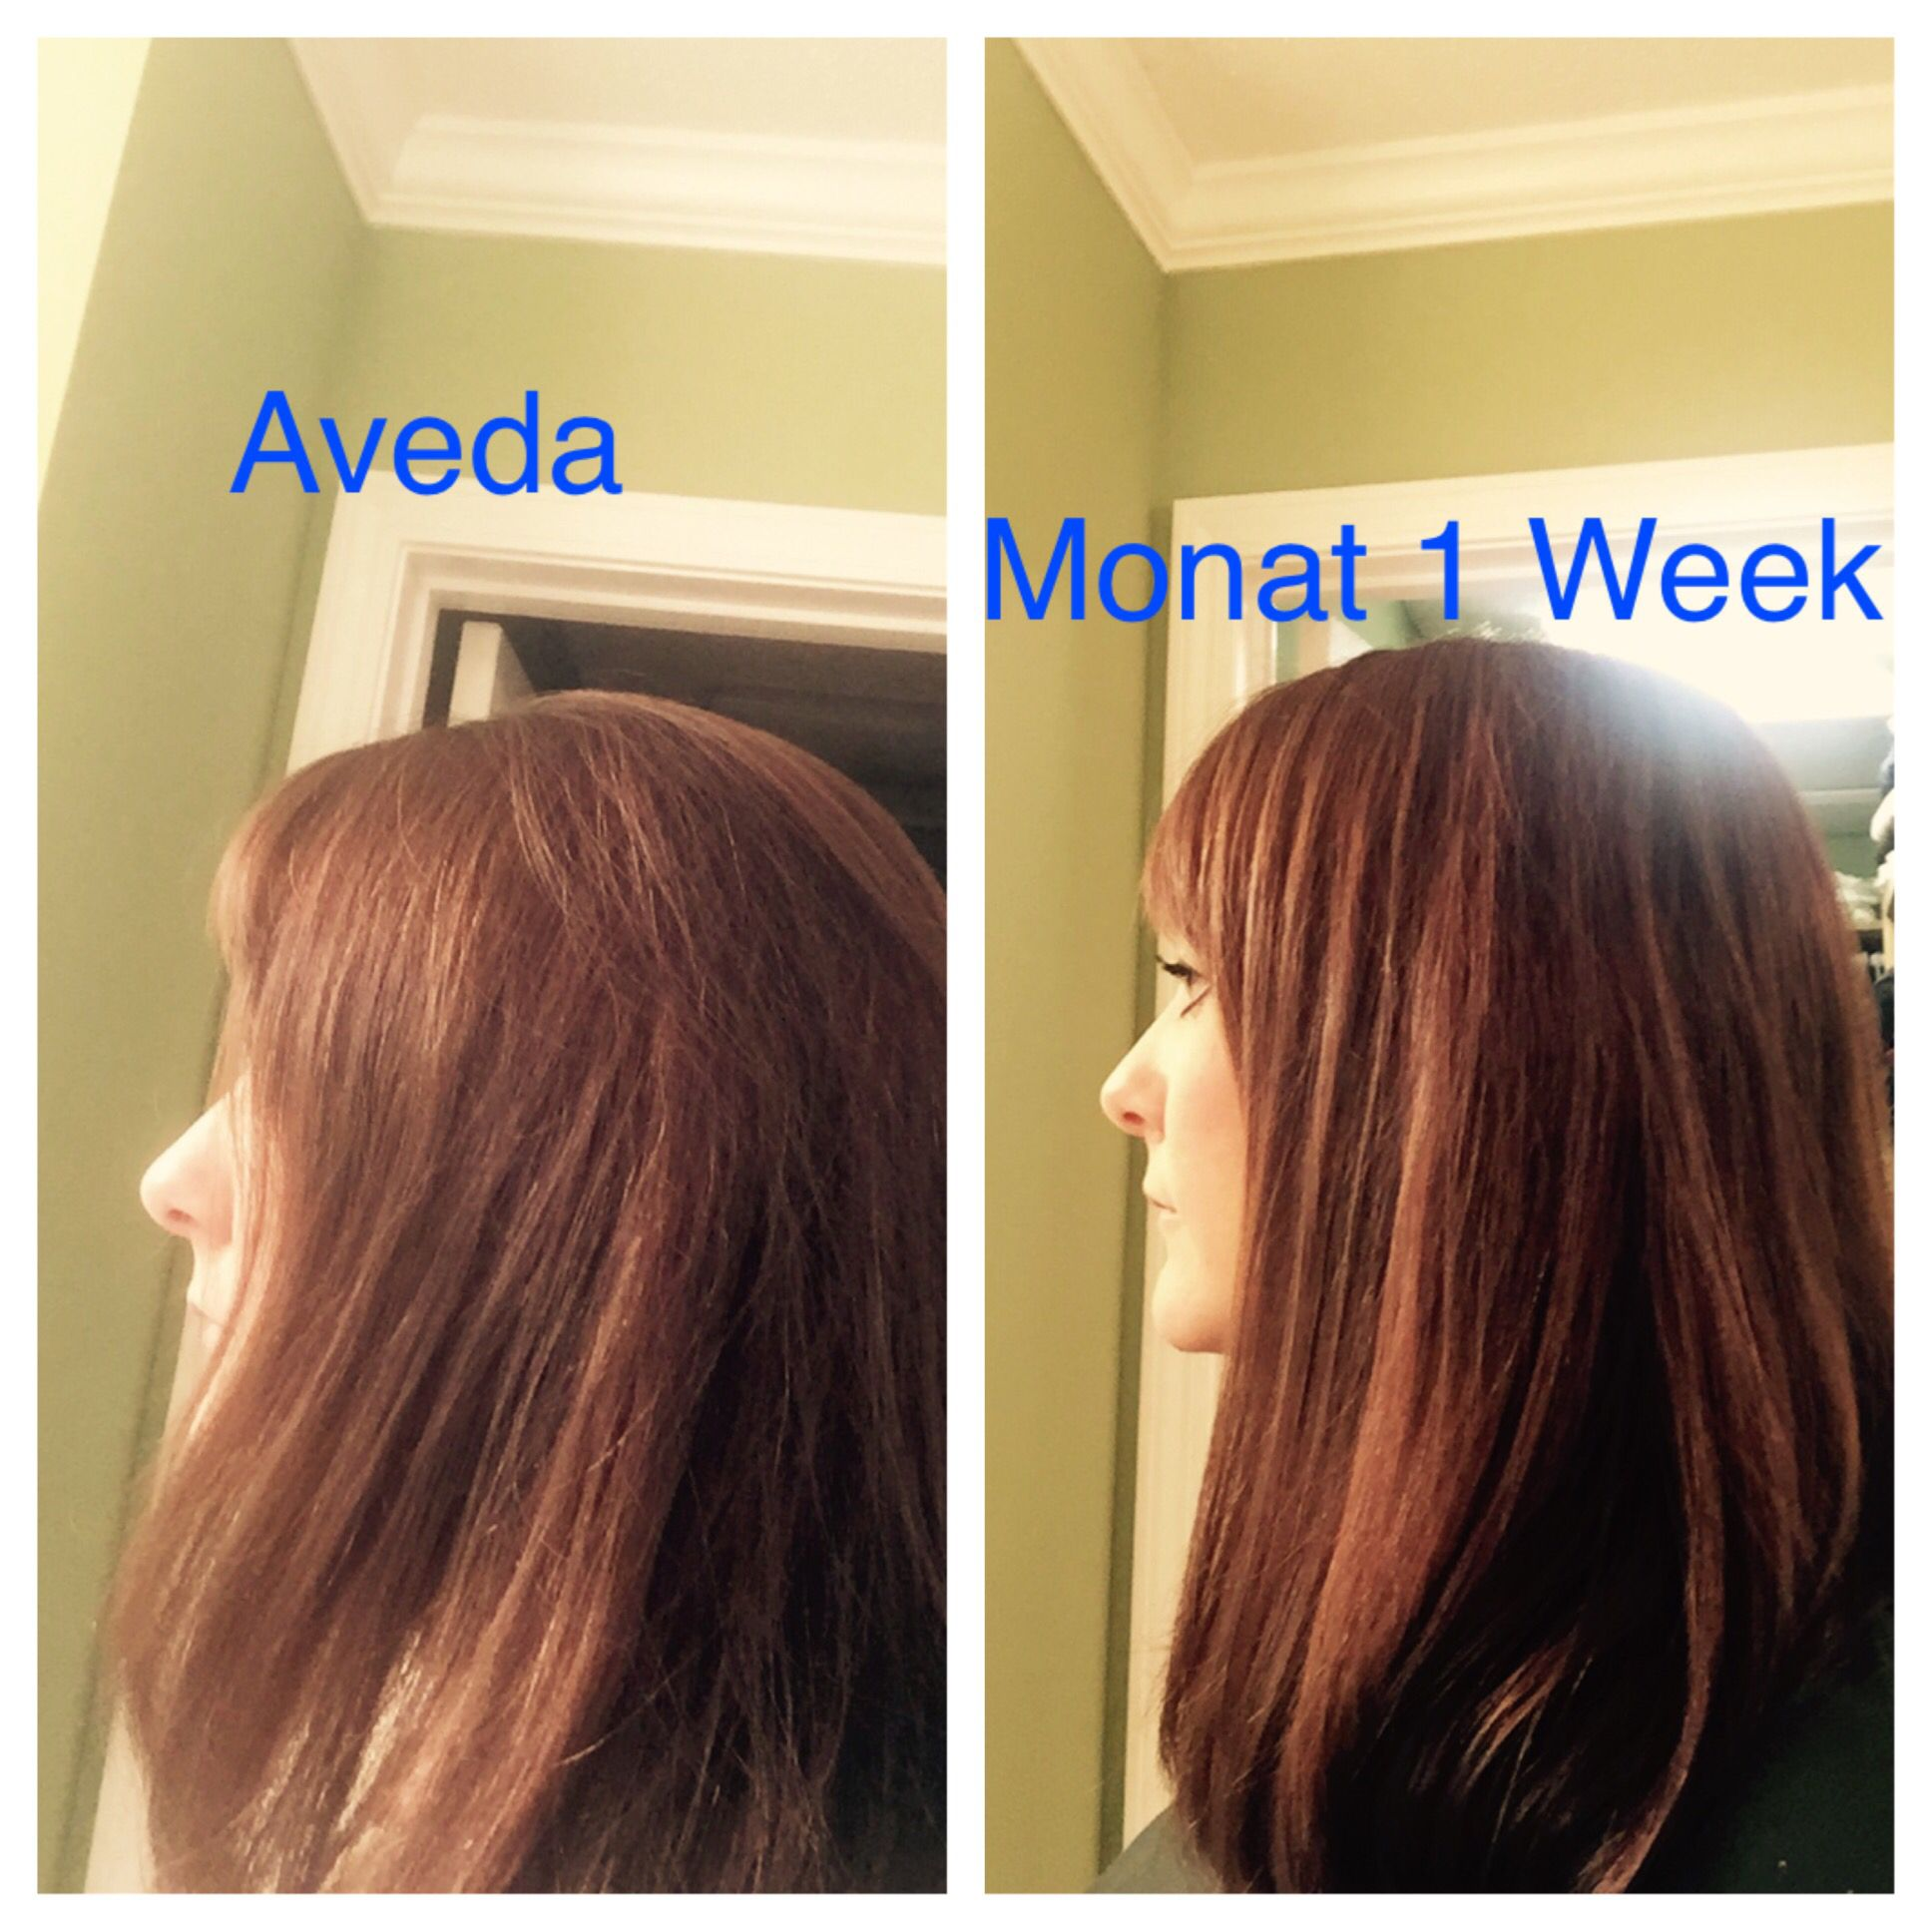 Personal results for using Monat. Natural based Haircare